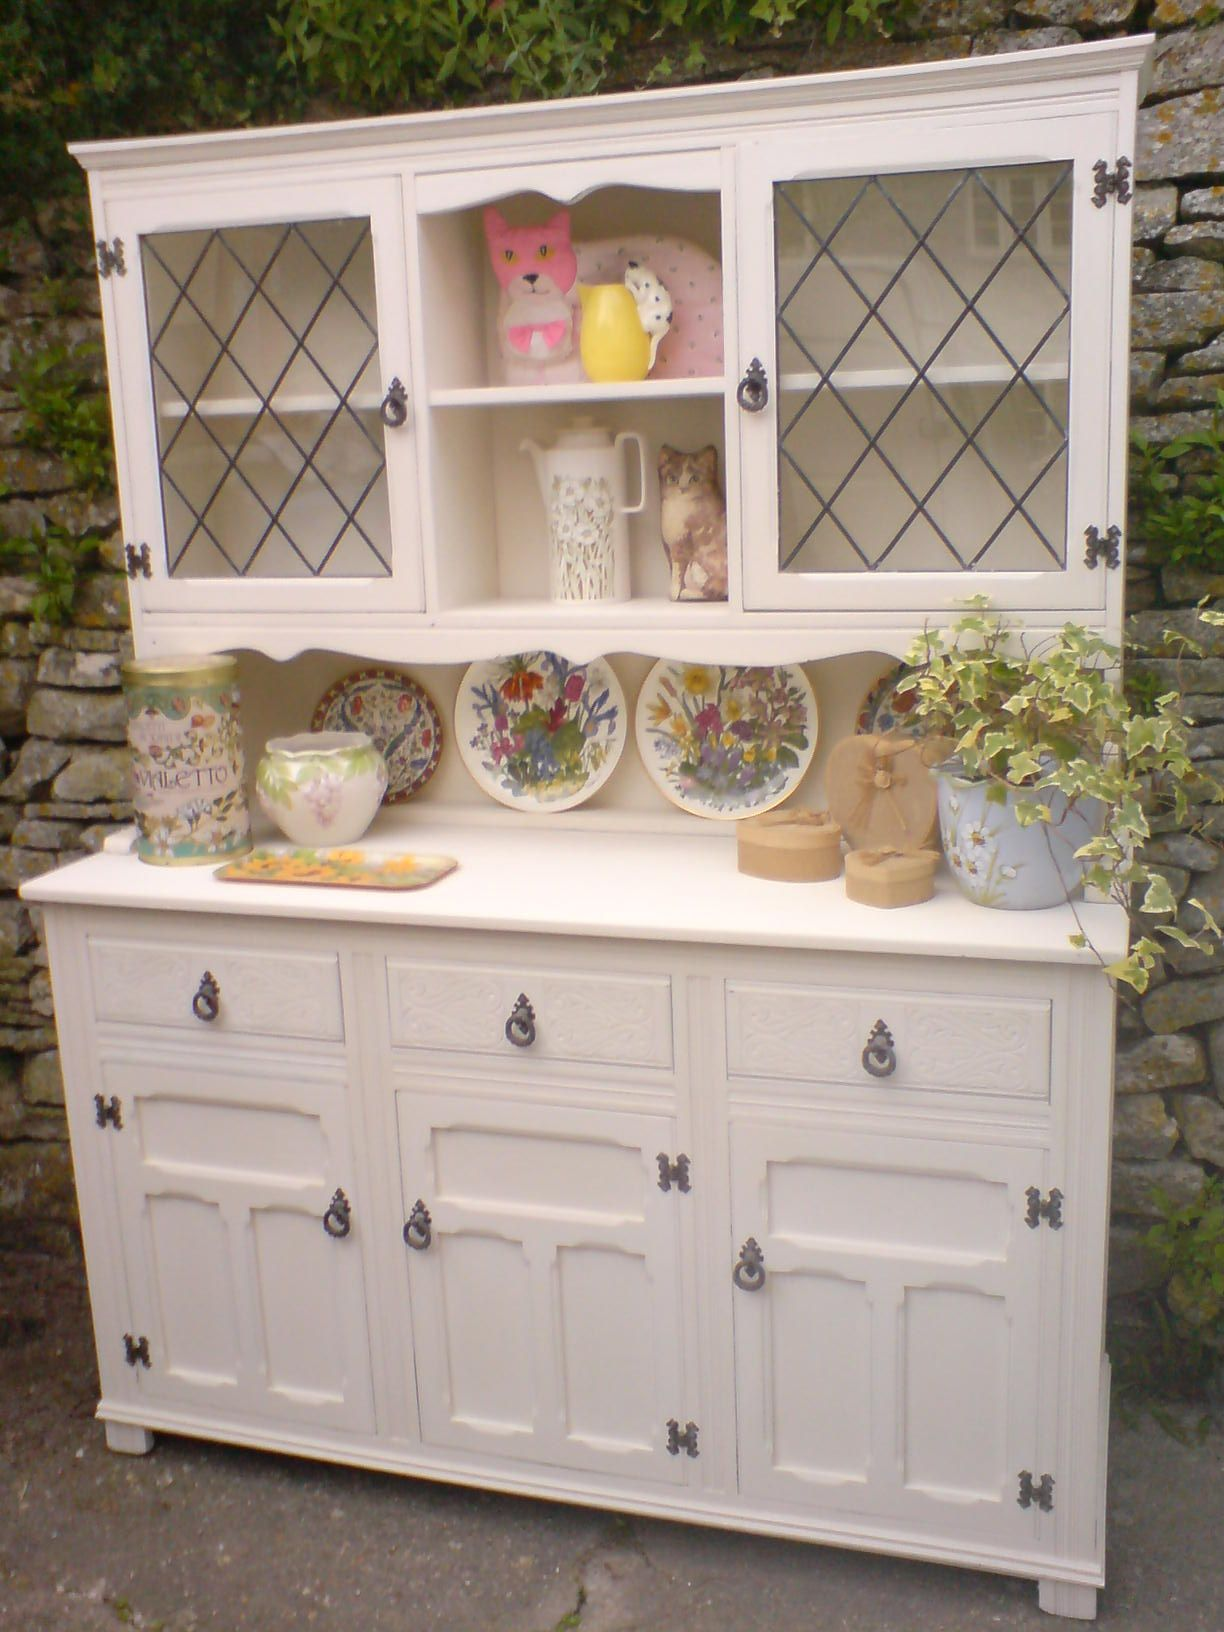 Detail Of Country Style Leaded Window Welsh Dresser Given